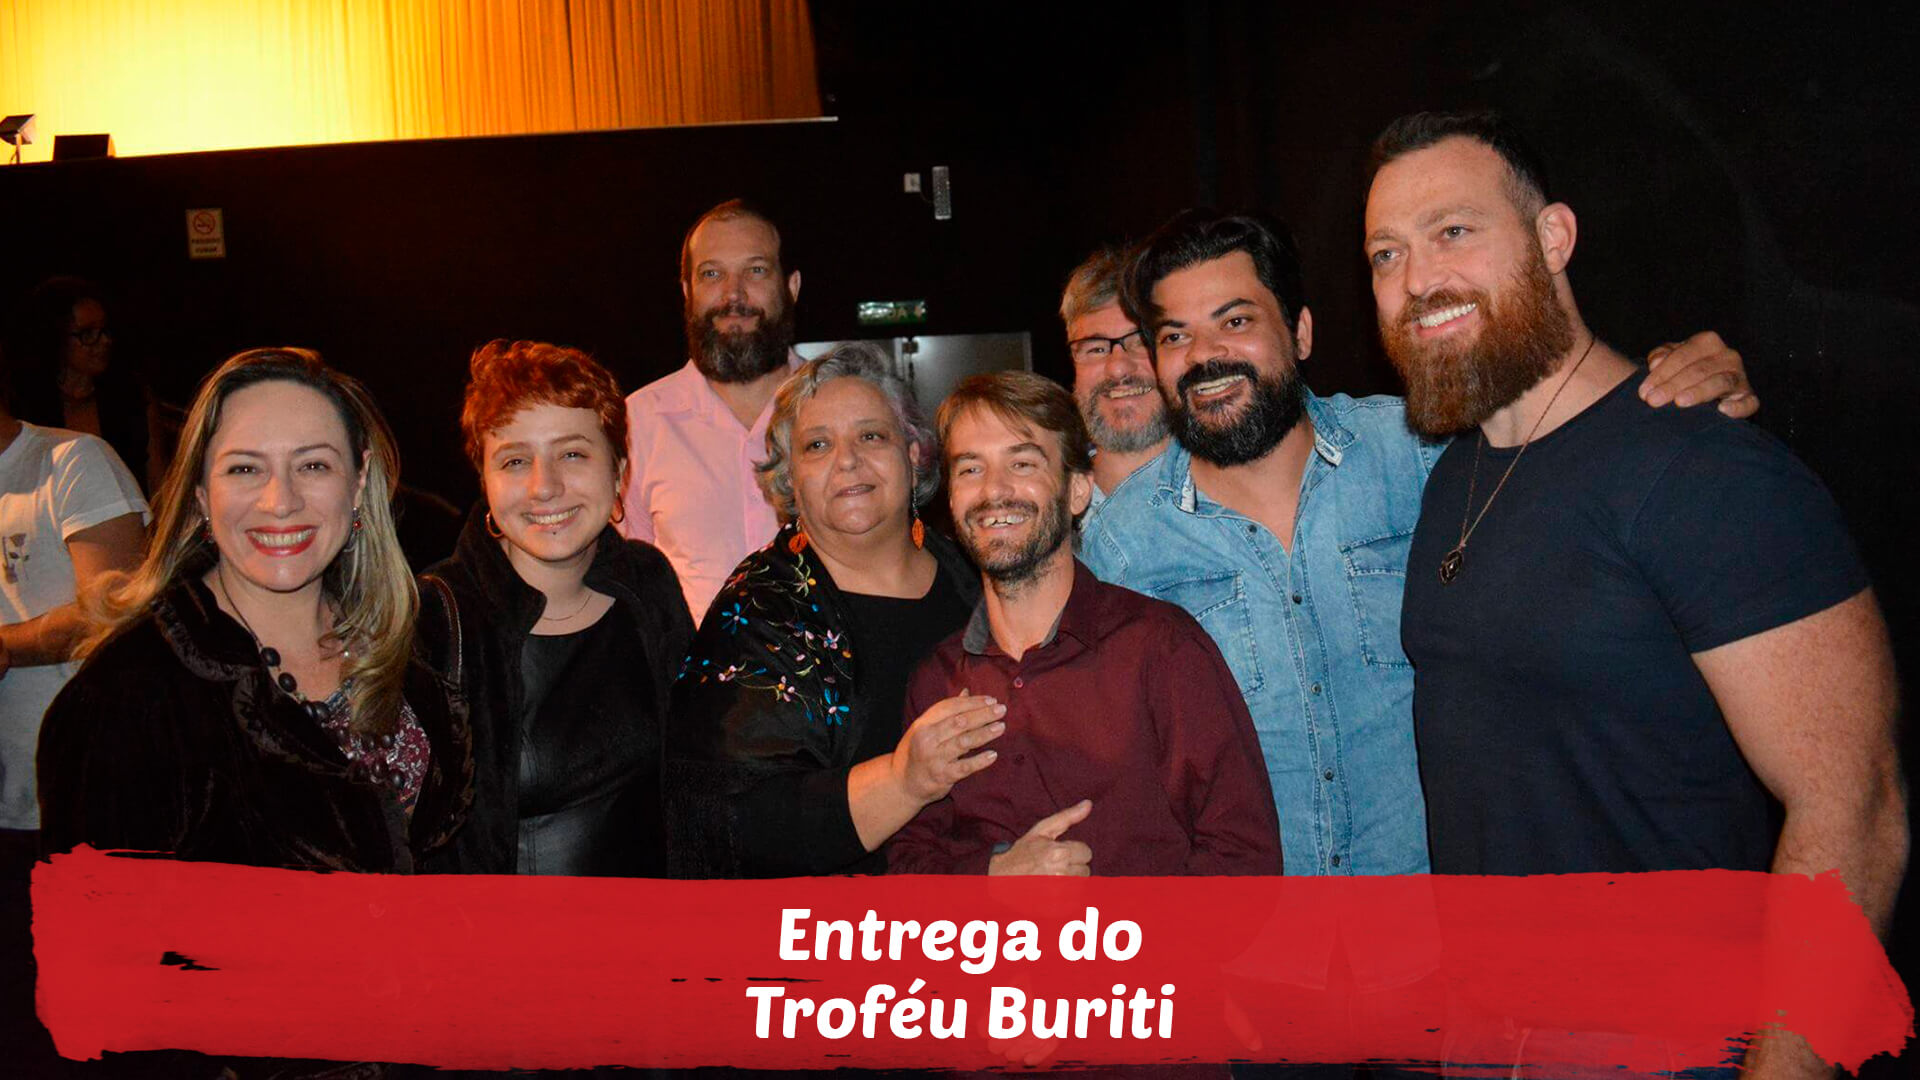 Entrega do Troféu Buriti aos destaques do ano na Cultura da capital